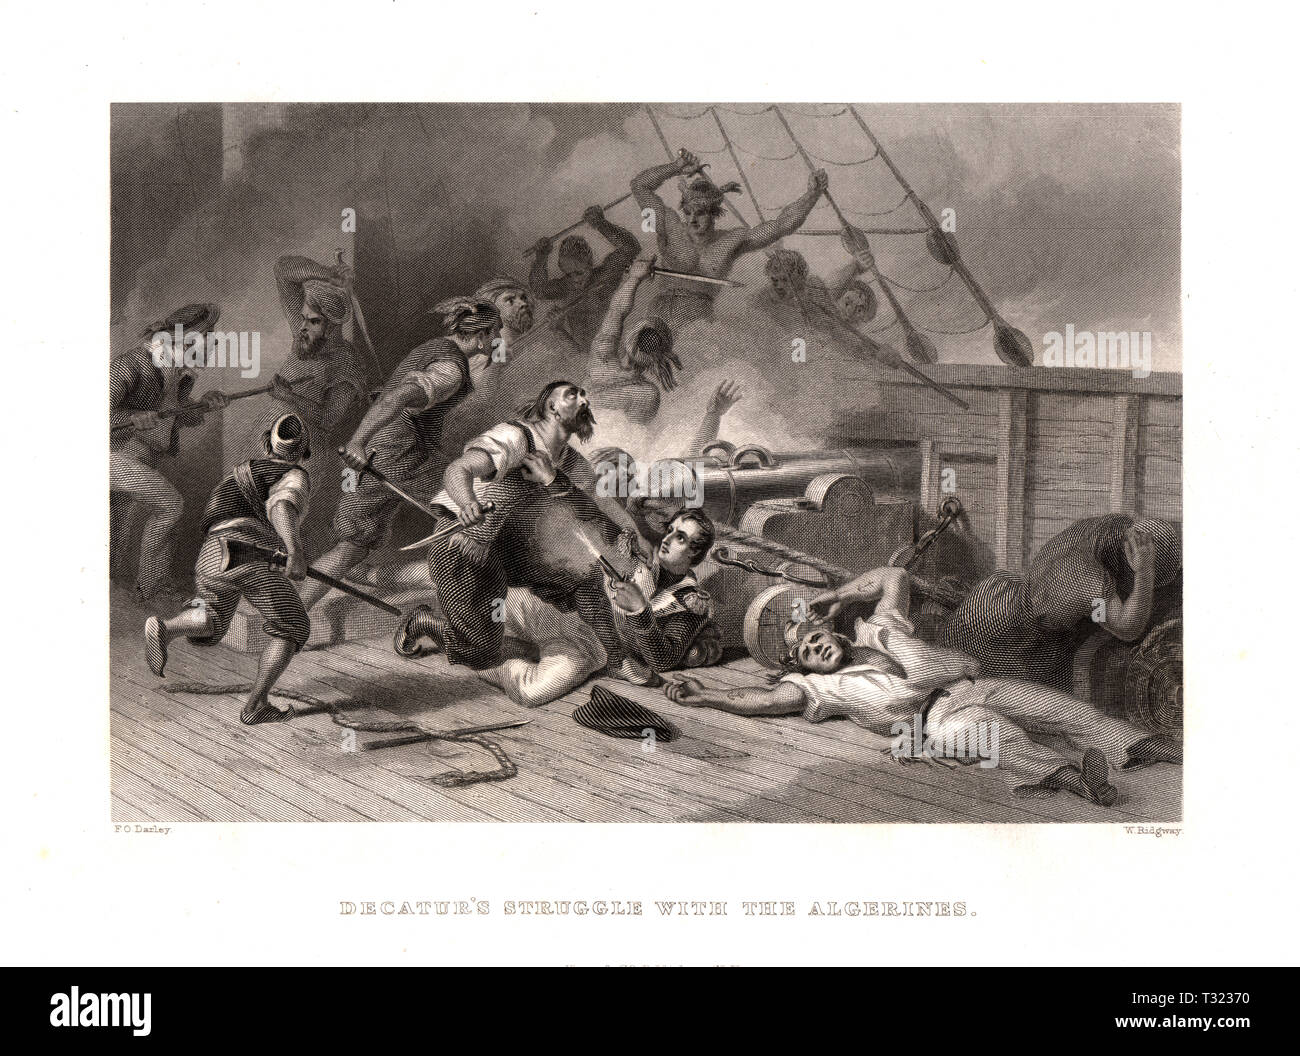 Decateur's Struggle with the Algerians at the Battle off Cape Gata during the Barbary Wars, North Africa Stock Photo